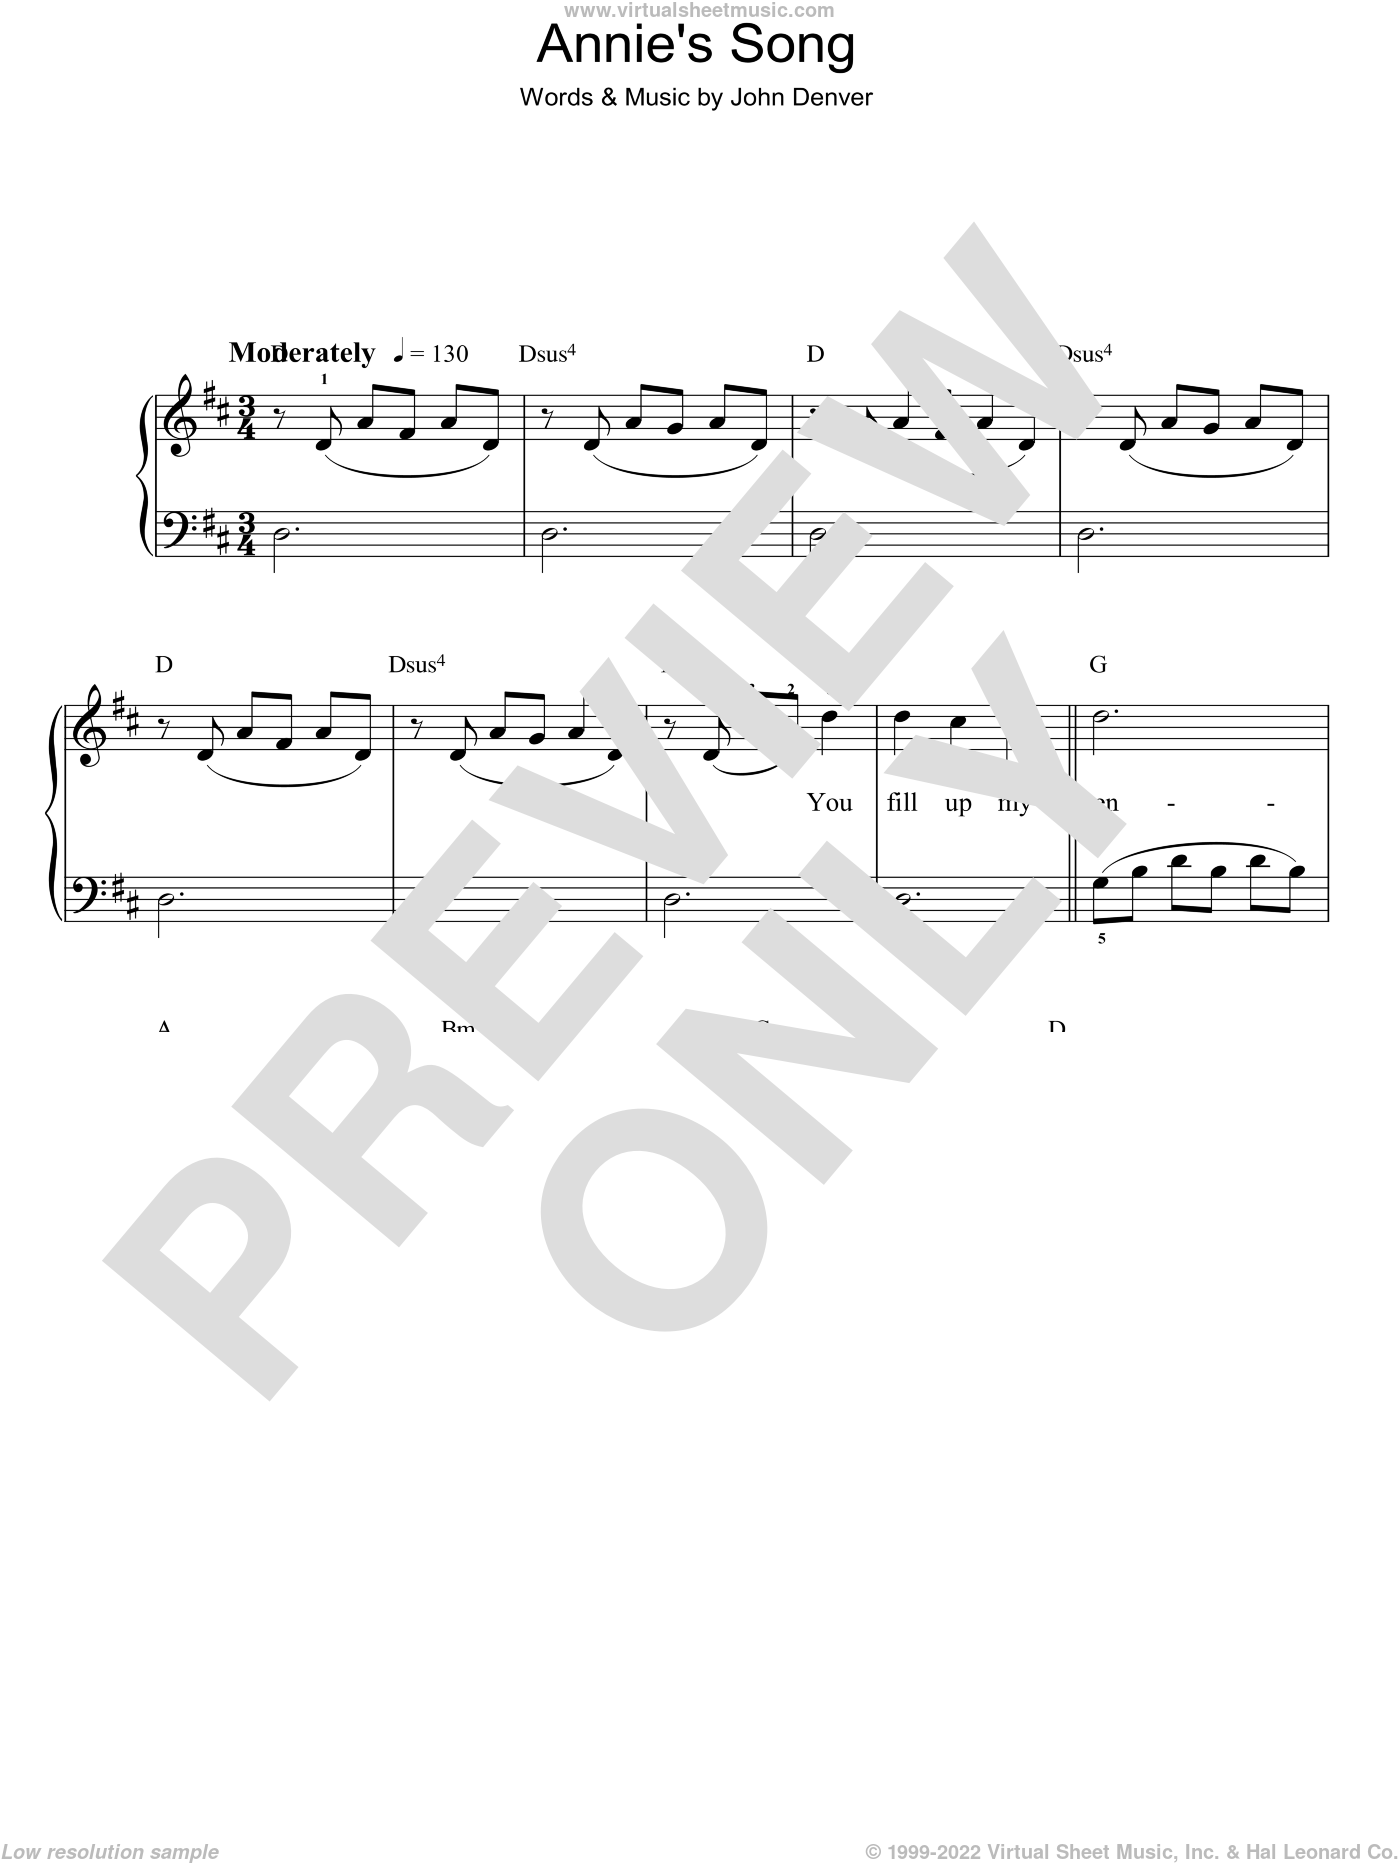 Annie's Song sheet music for piano solo by John Denver, easy skill level